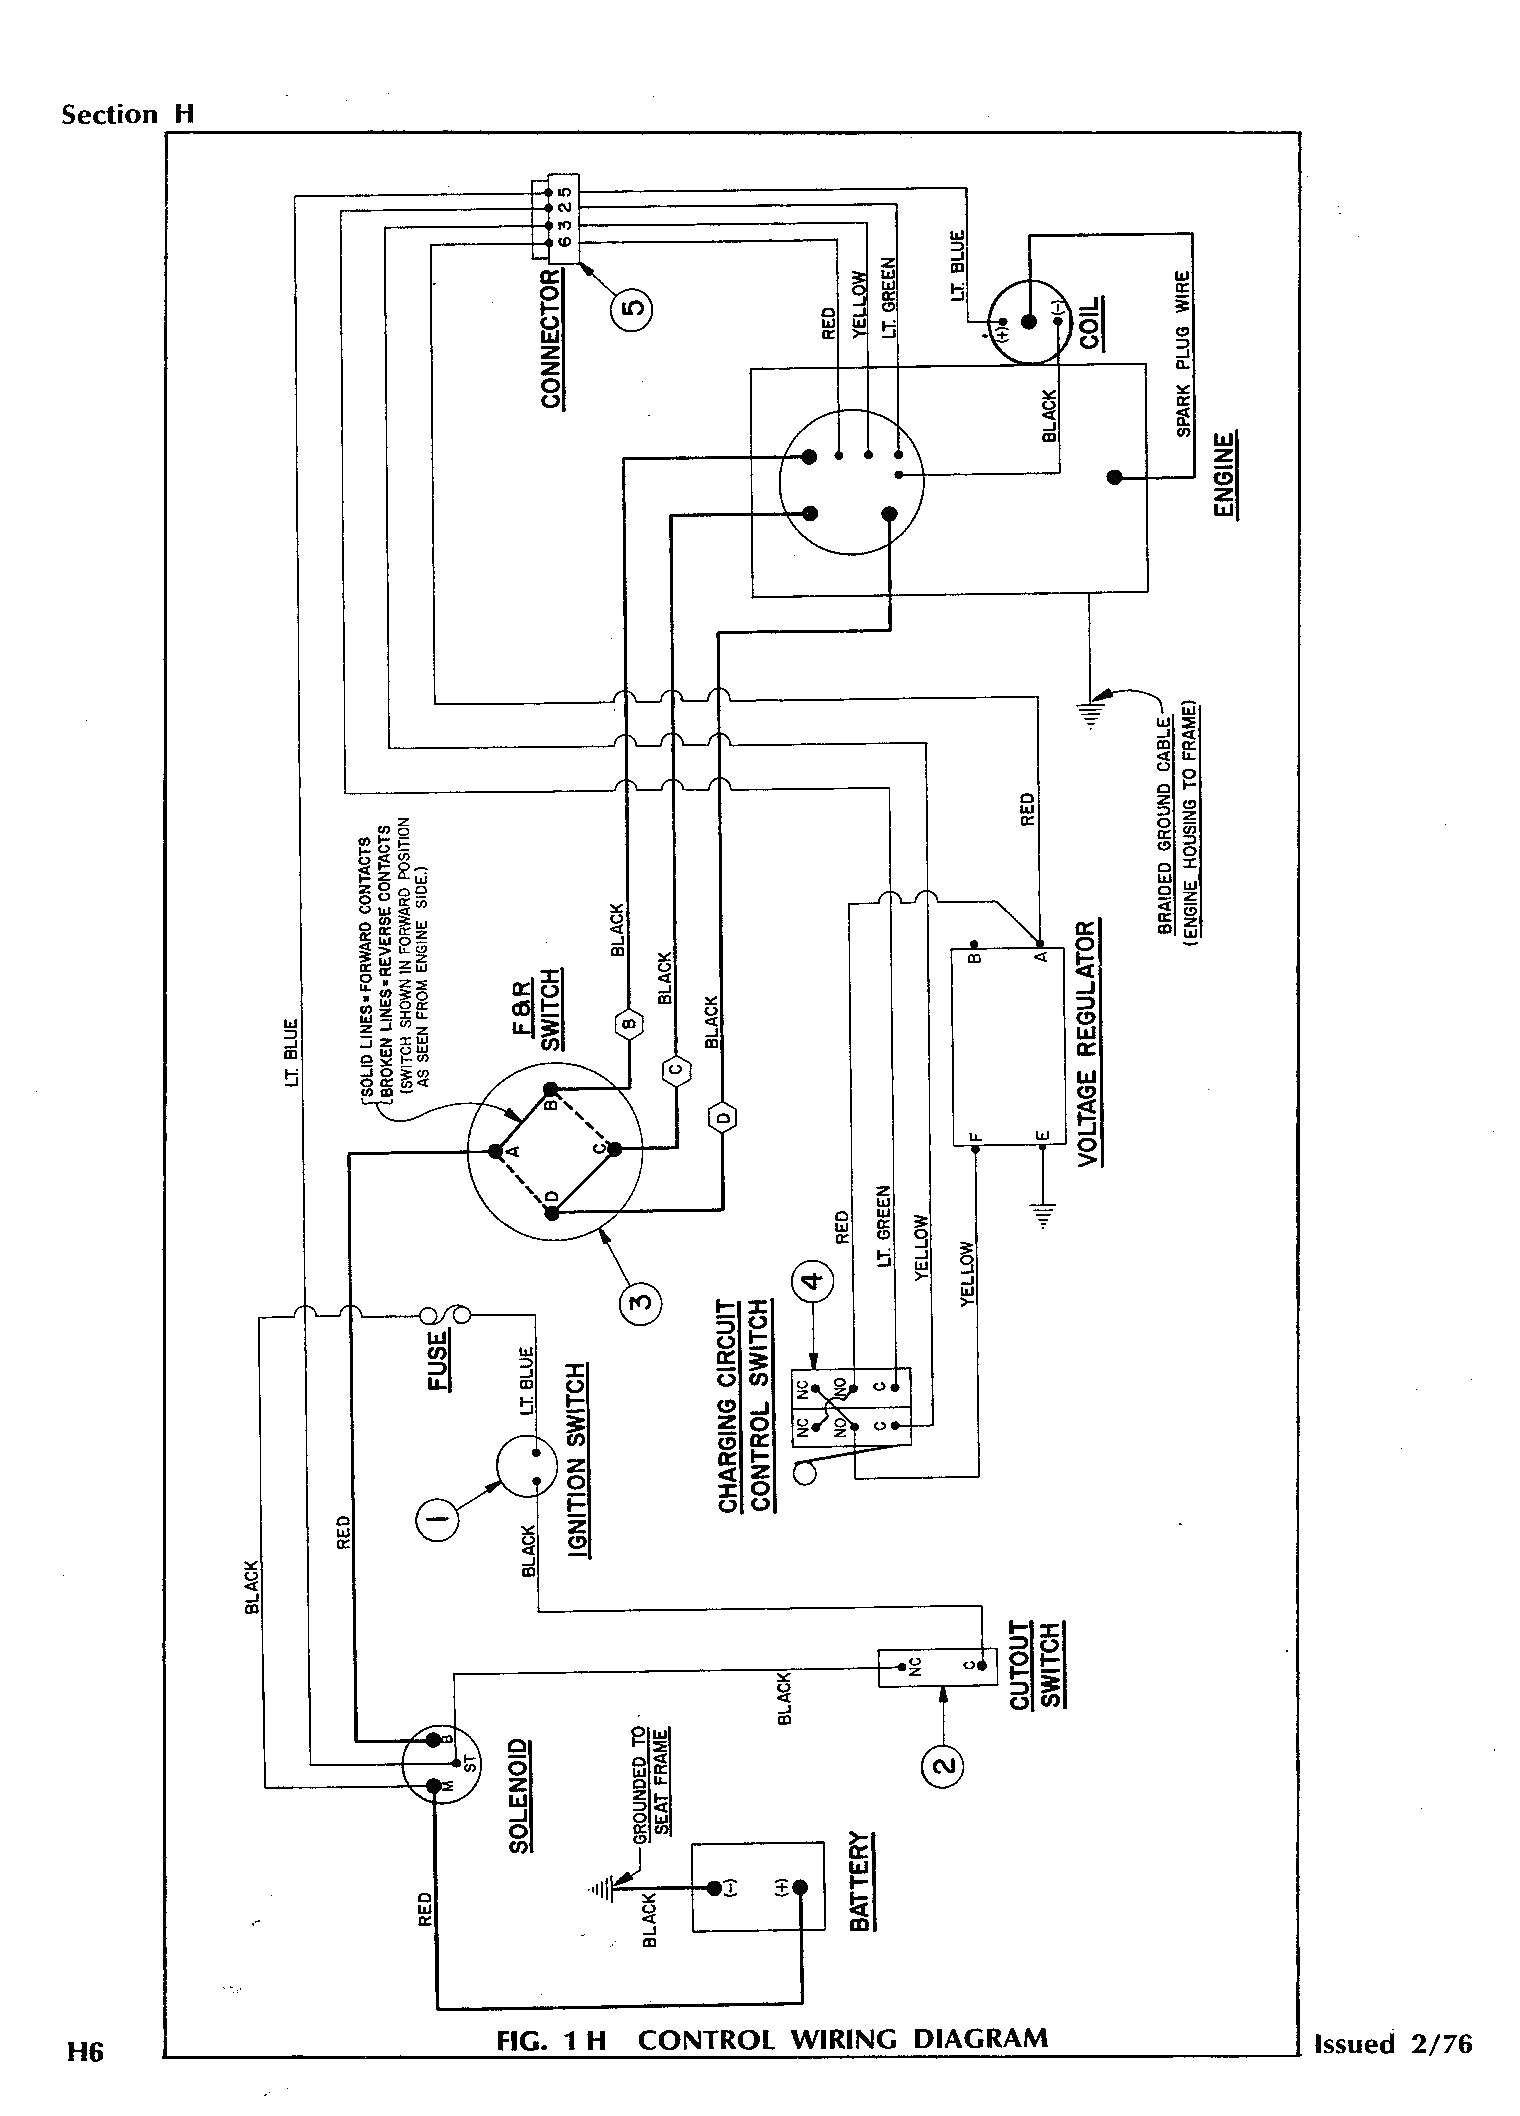 1994 Ezgo Gas Engine Wiring Diagram 1992 Ezgo Wiring Diagram Wiring Diagram Data Of 1994 Ezgo Gas Engine Wiring Diagram 1998 Club Car Wiring Diagram 48 Volt Wiring Diagram Data